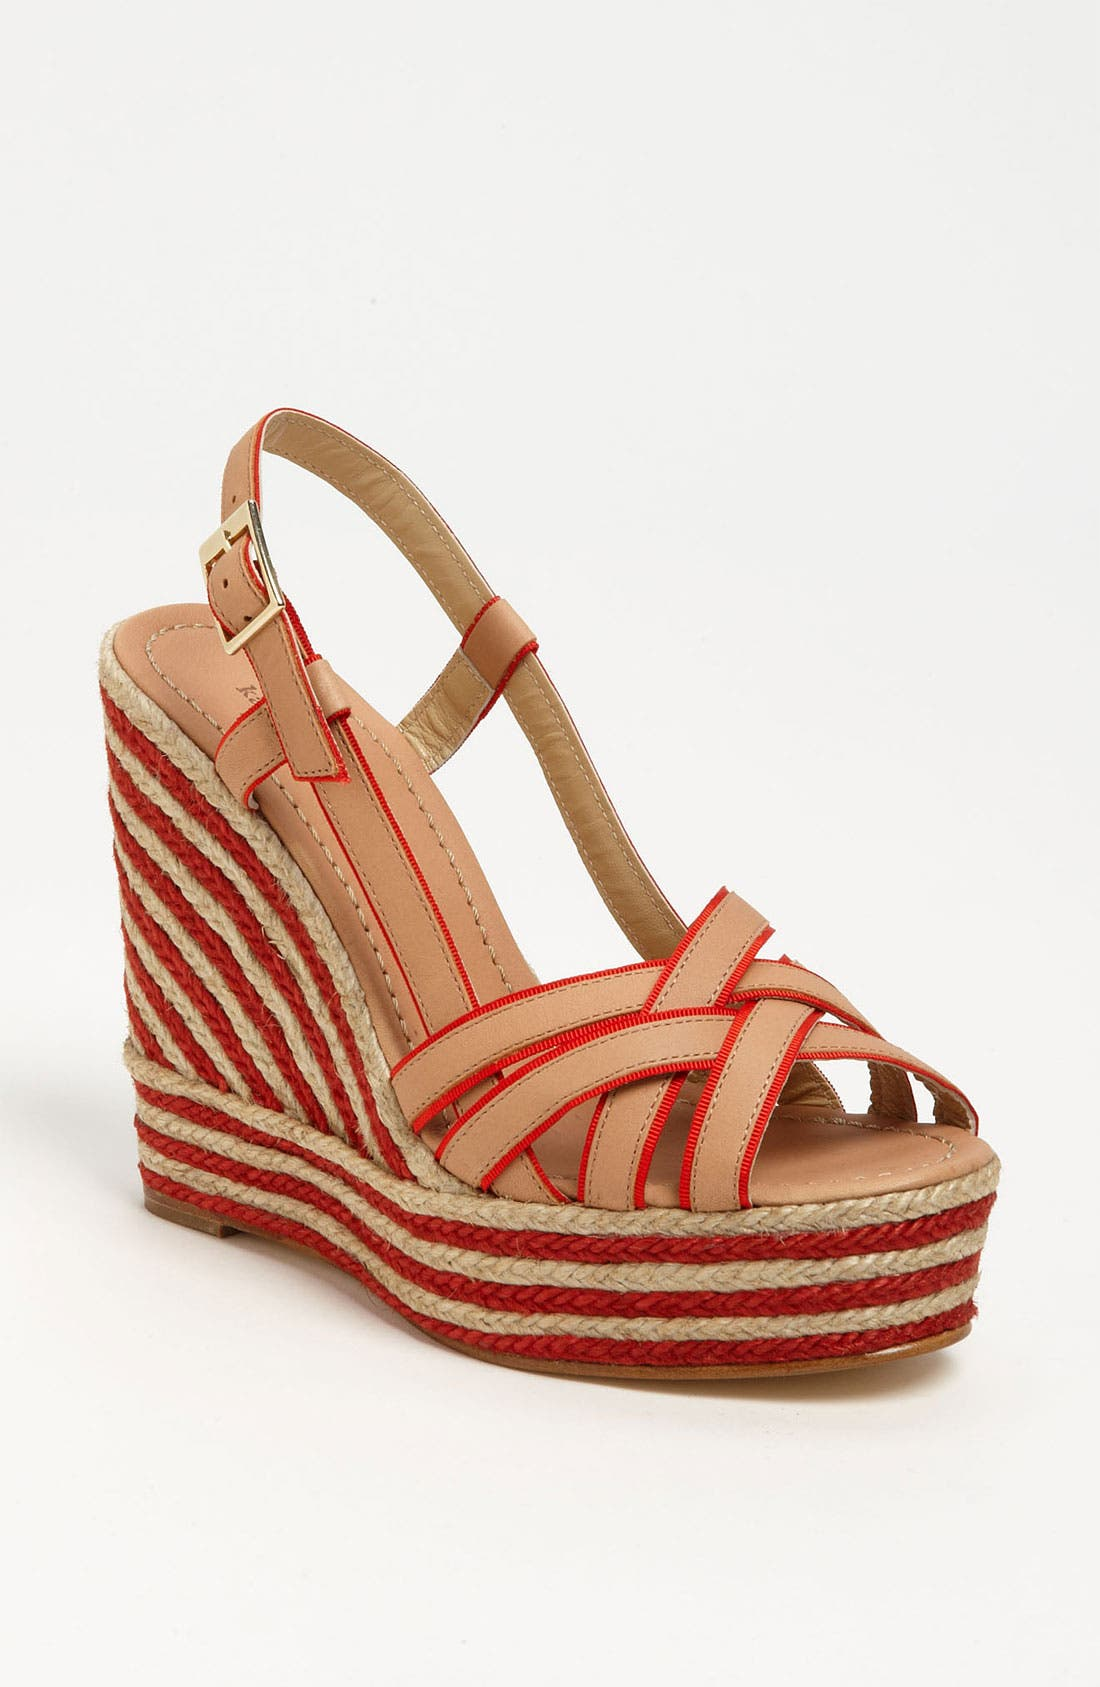 Alternate Image 1 Selected - kate spade new york 'ladan' wedge sandal